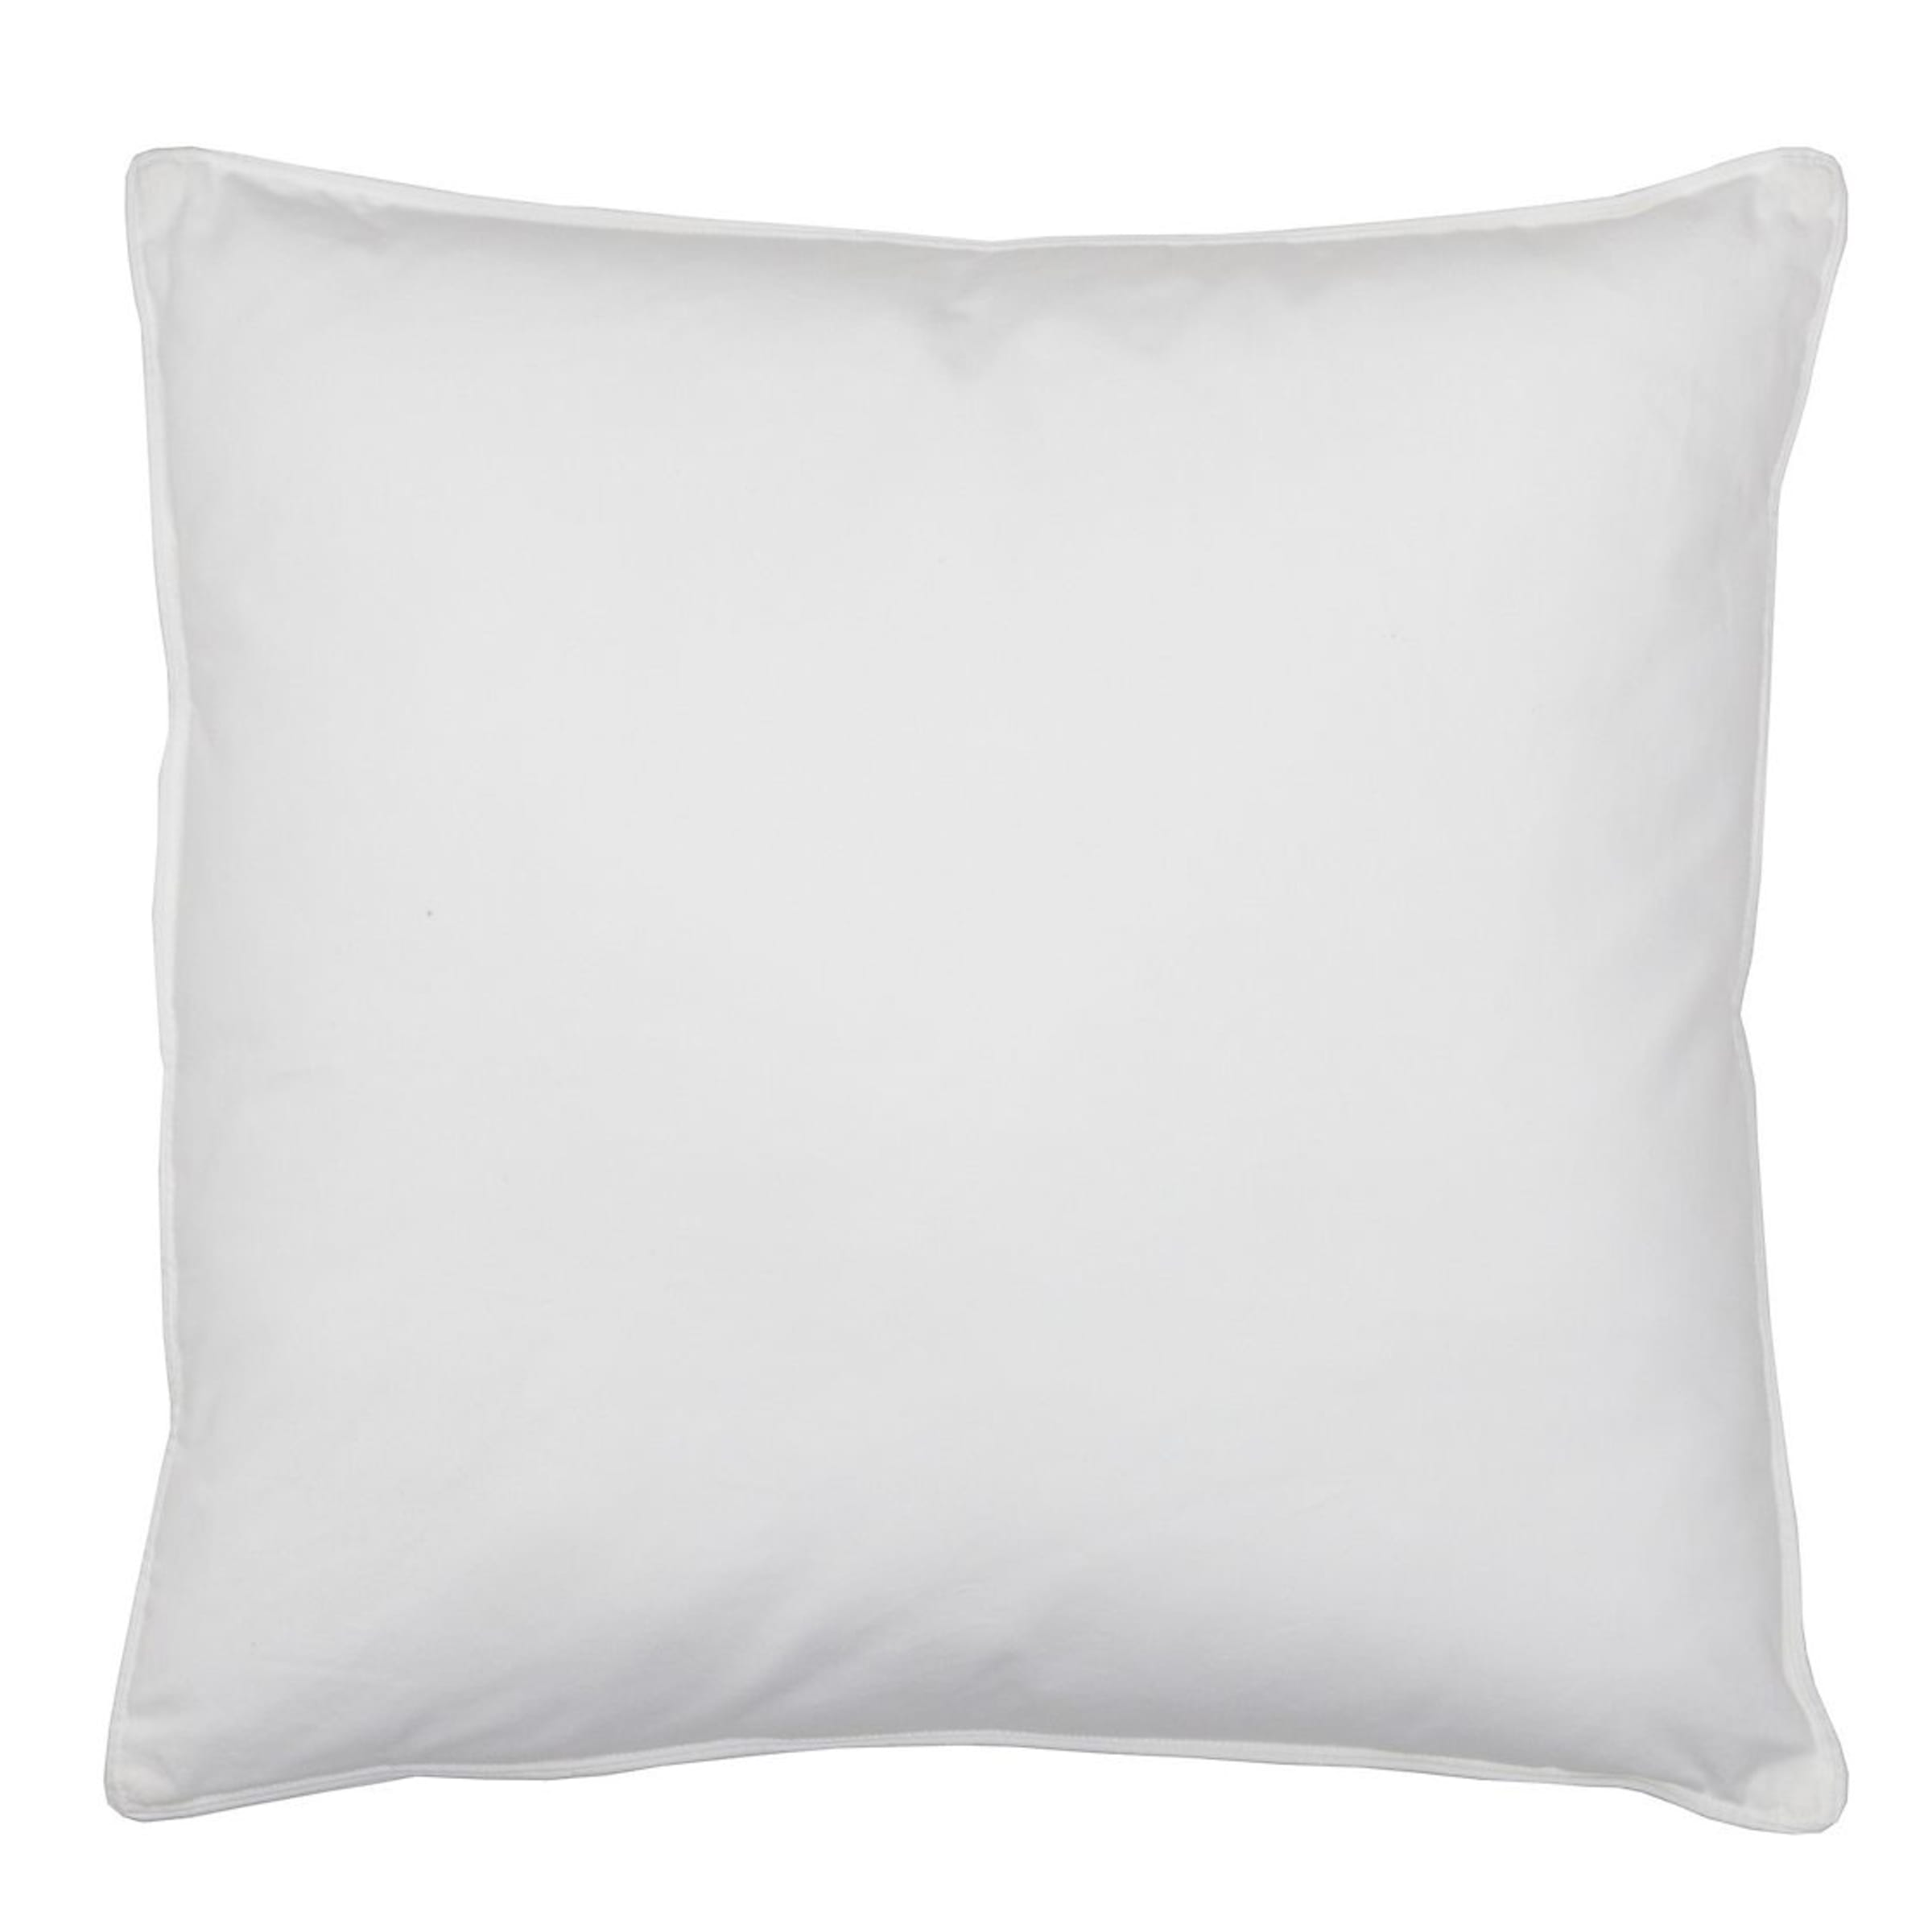 Company Essentials Down Free Medium Density Square Pillow Inserts